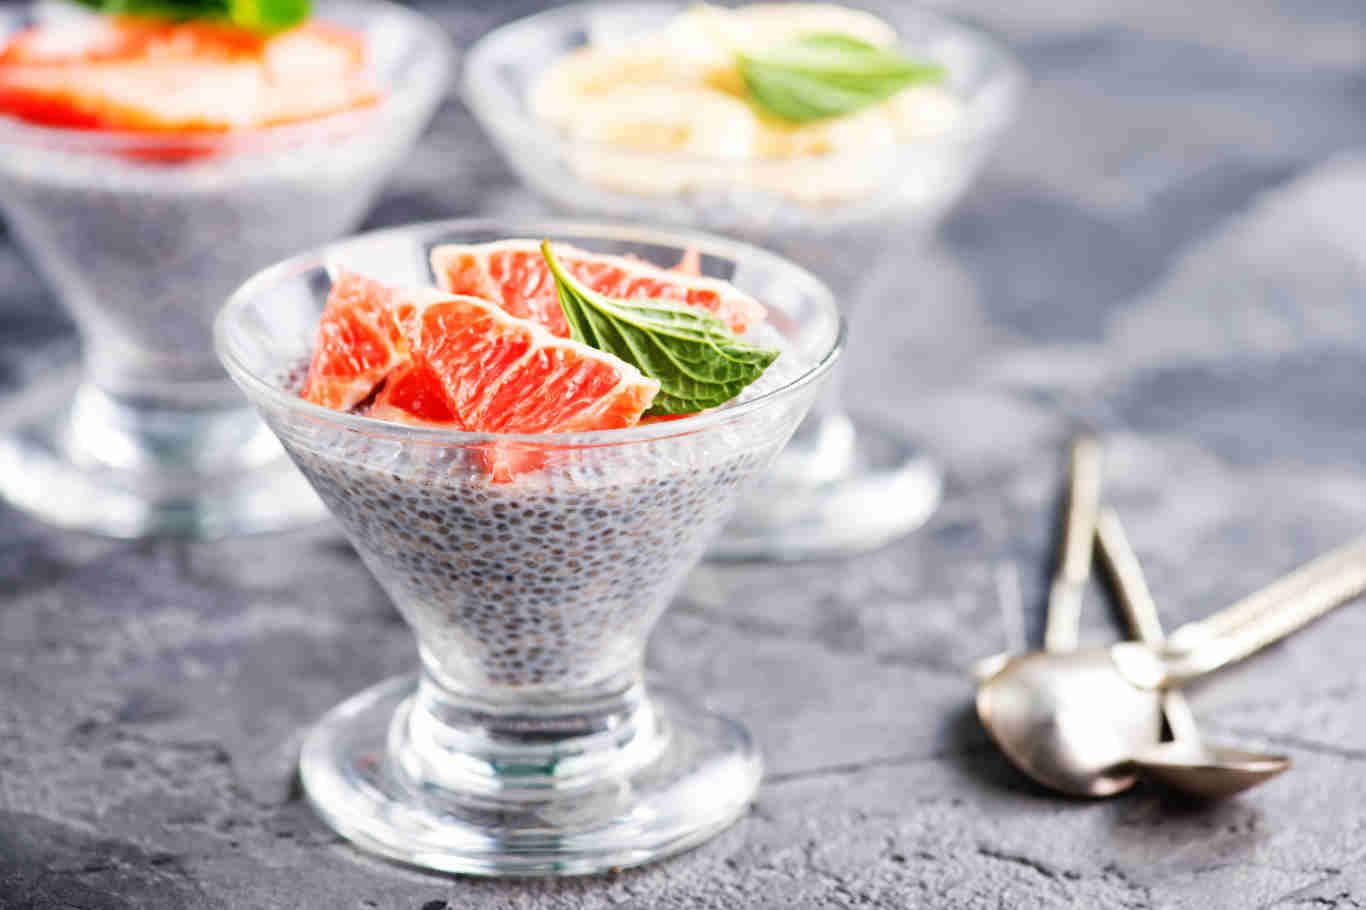 chia pudding with fruit in the glass